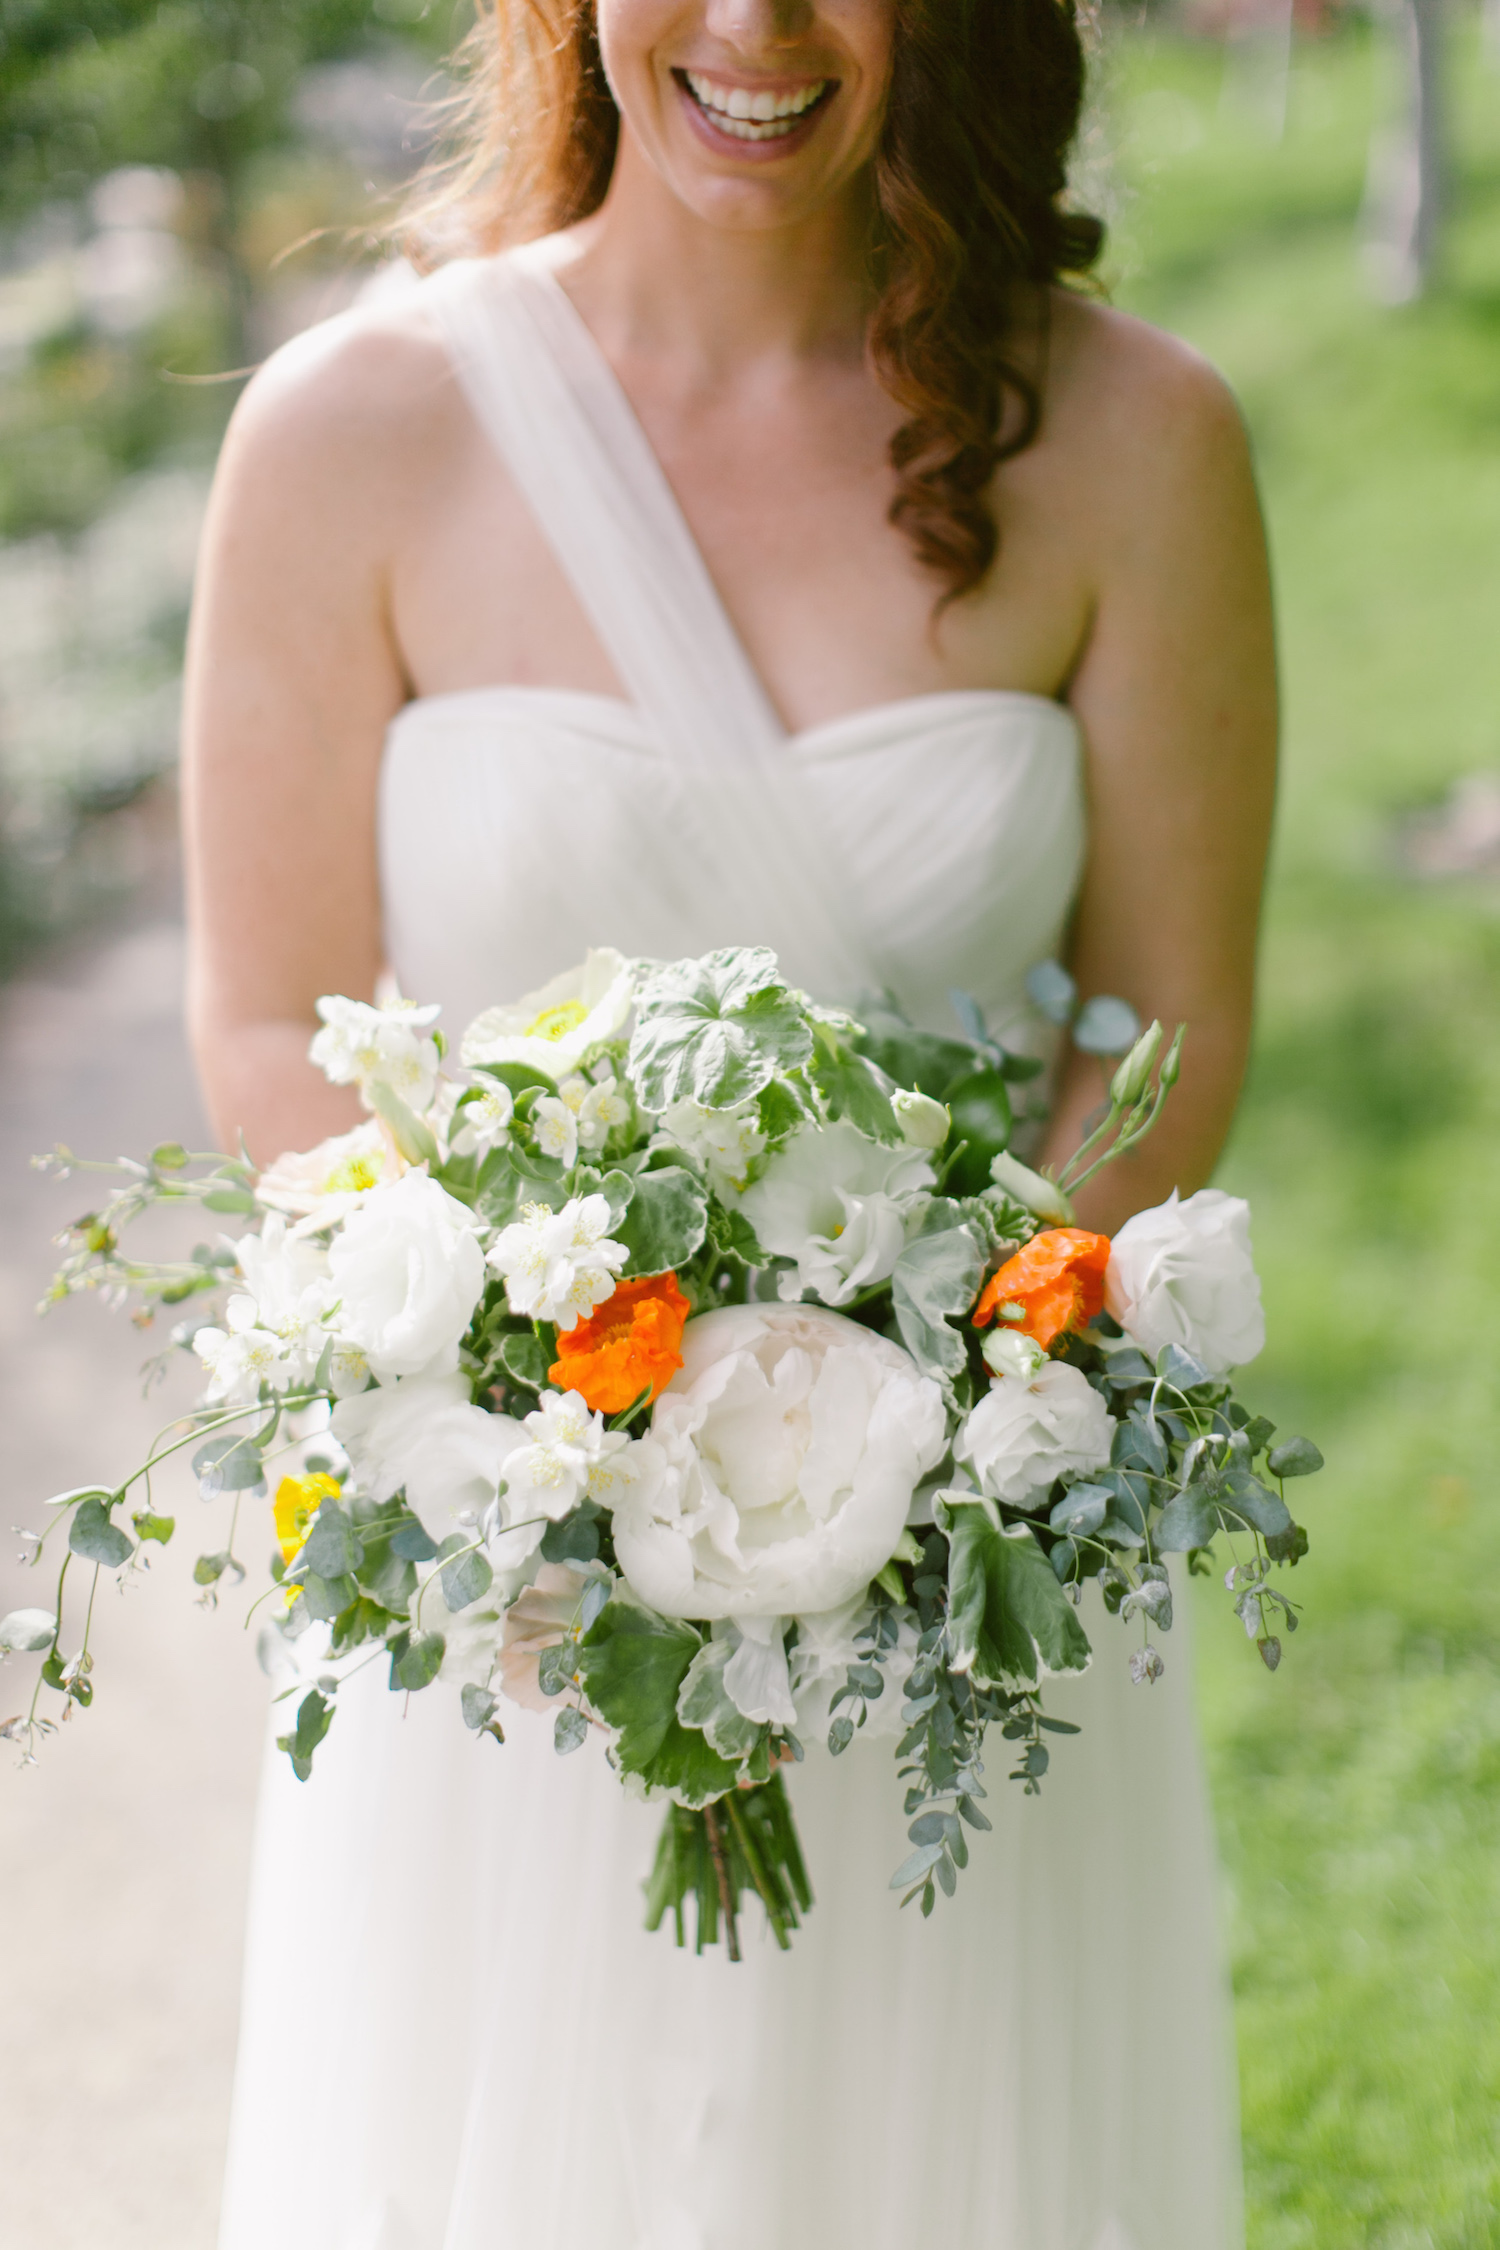 Peony, poppy & geranium bridal bouquet by San Diego wedding florist, Compass Floral.